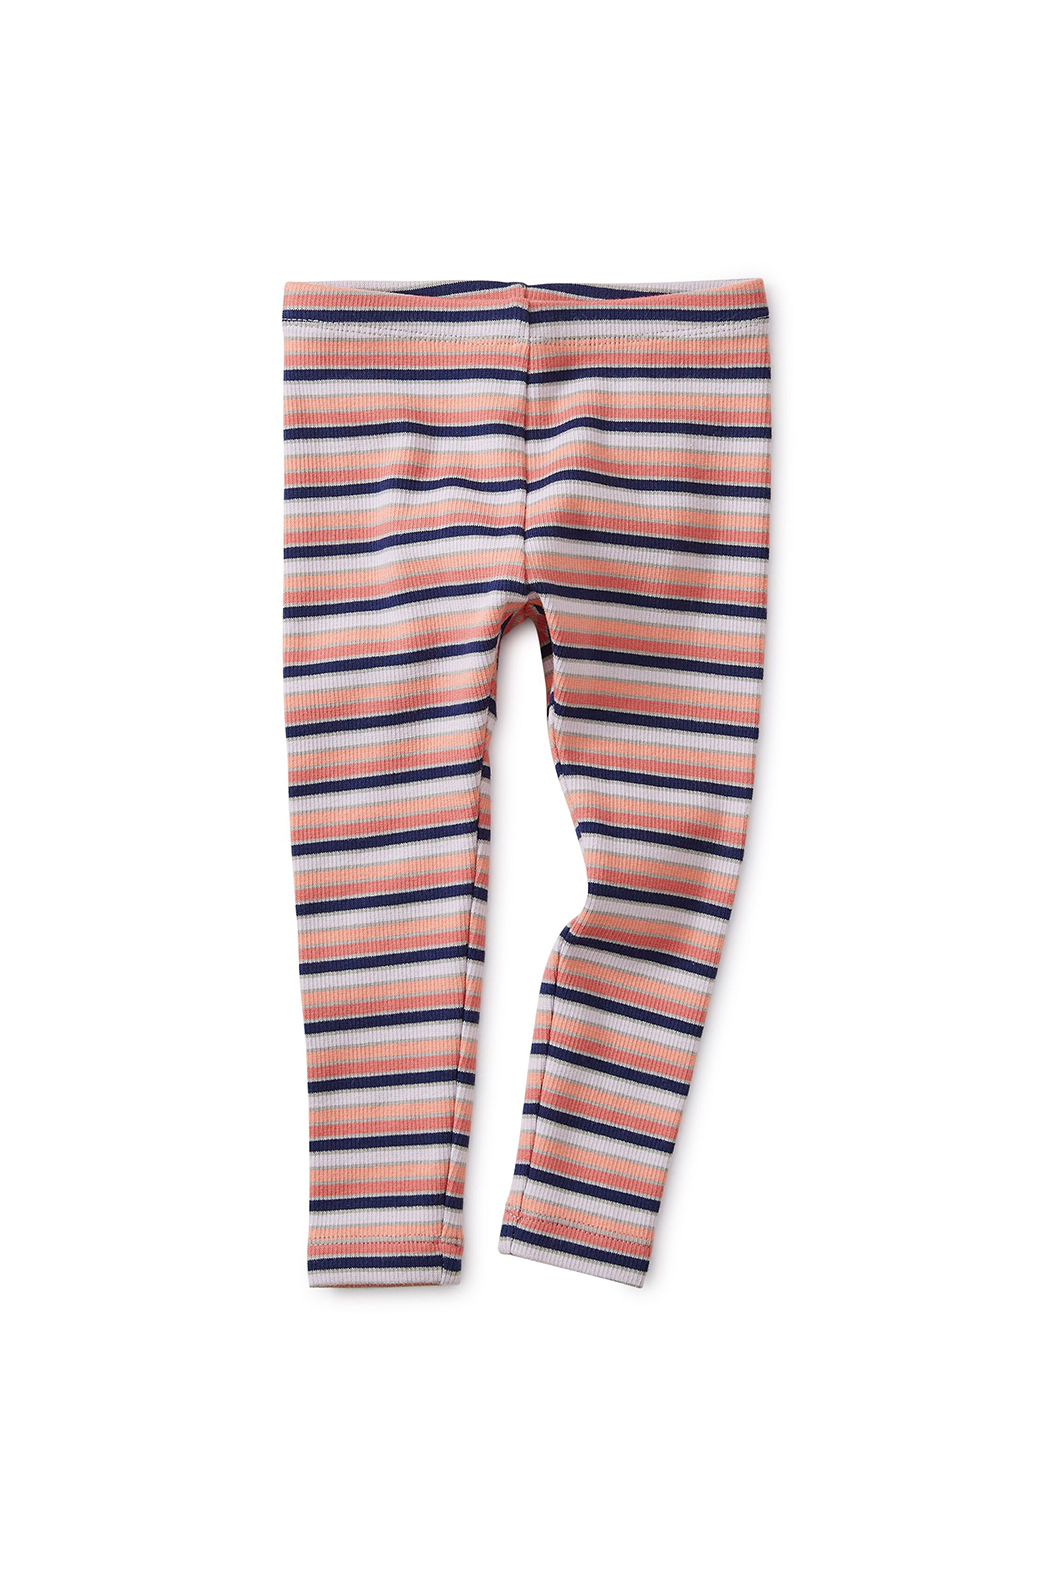 Tea Collection Multi Stripe Ribbed Leggings - Front Full Image